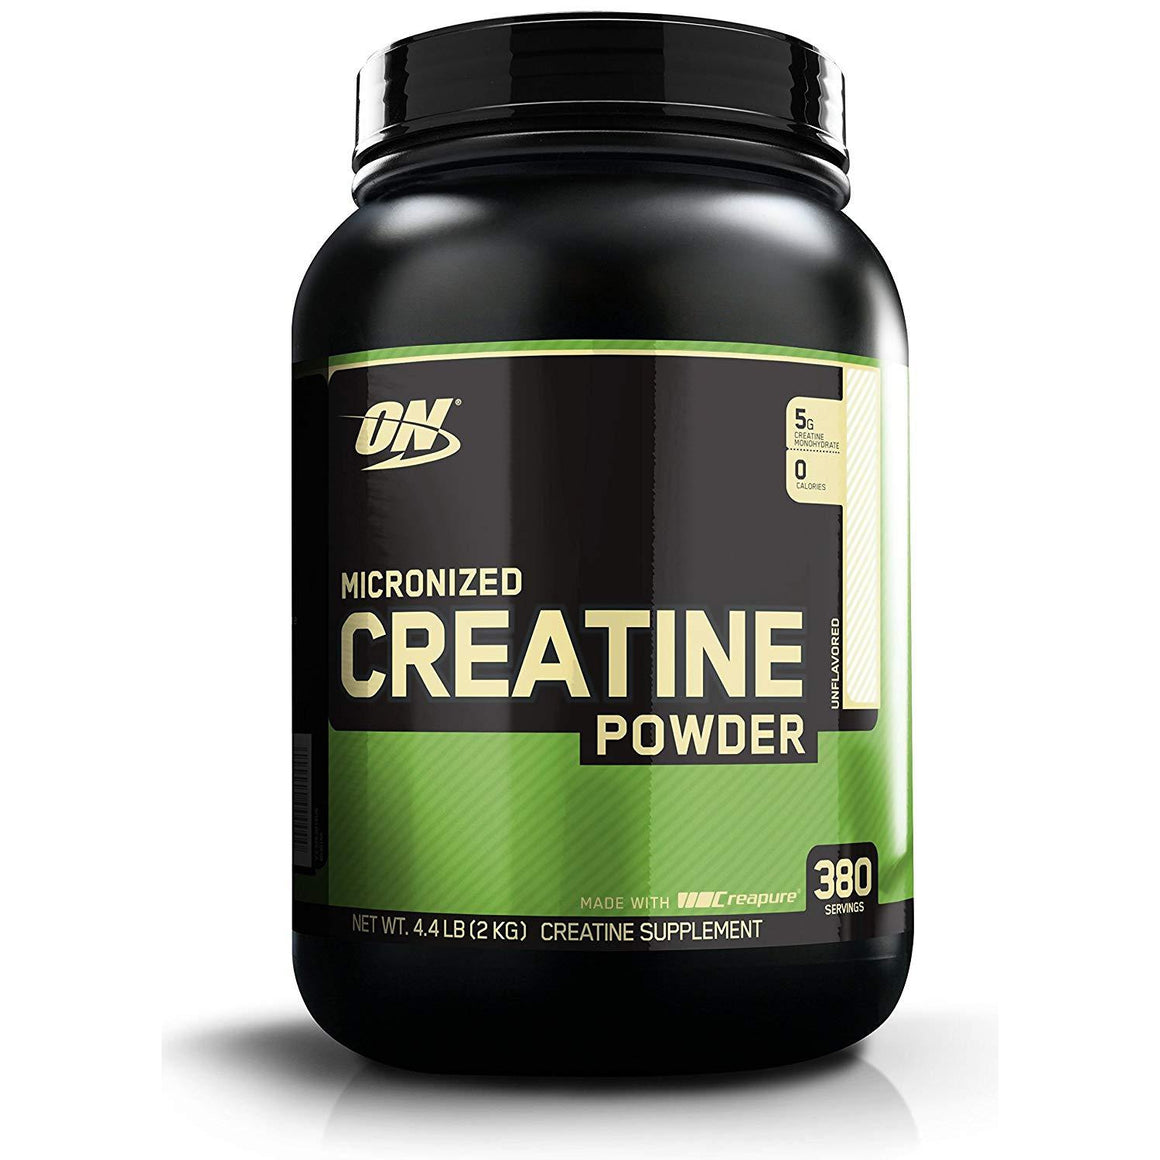 ON Creatine Powder 2000g-Creatine / Pre and Post Workout-The Nutri X